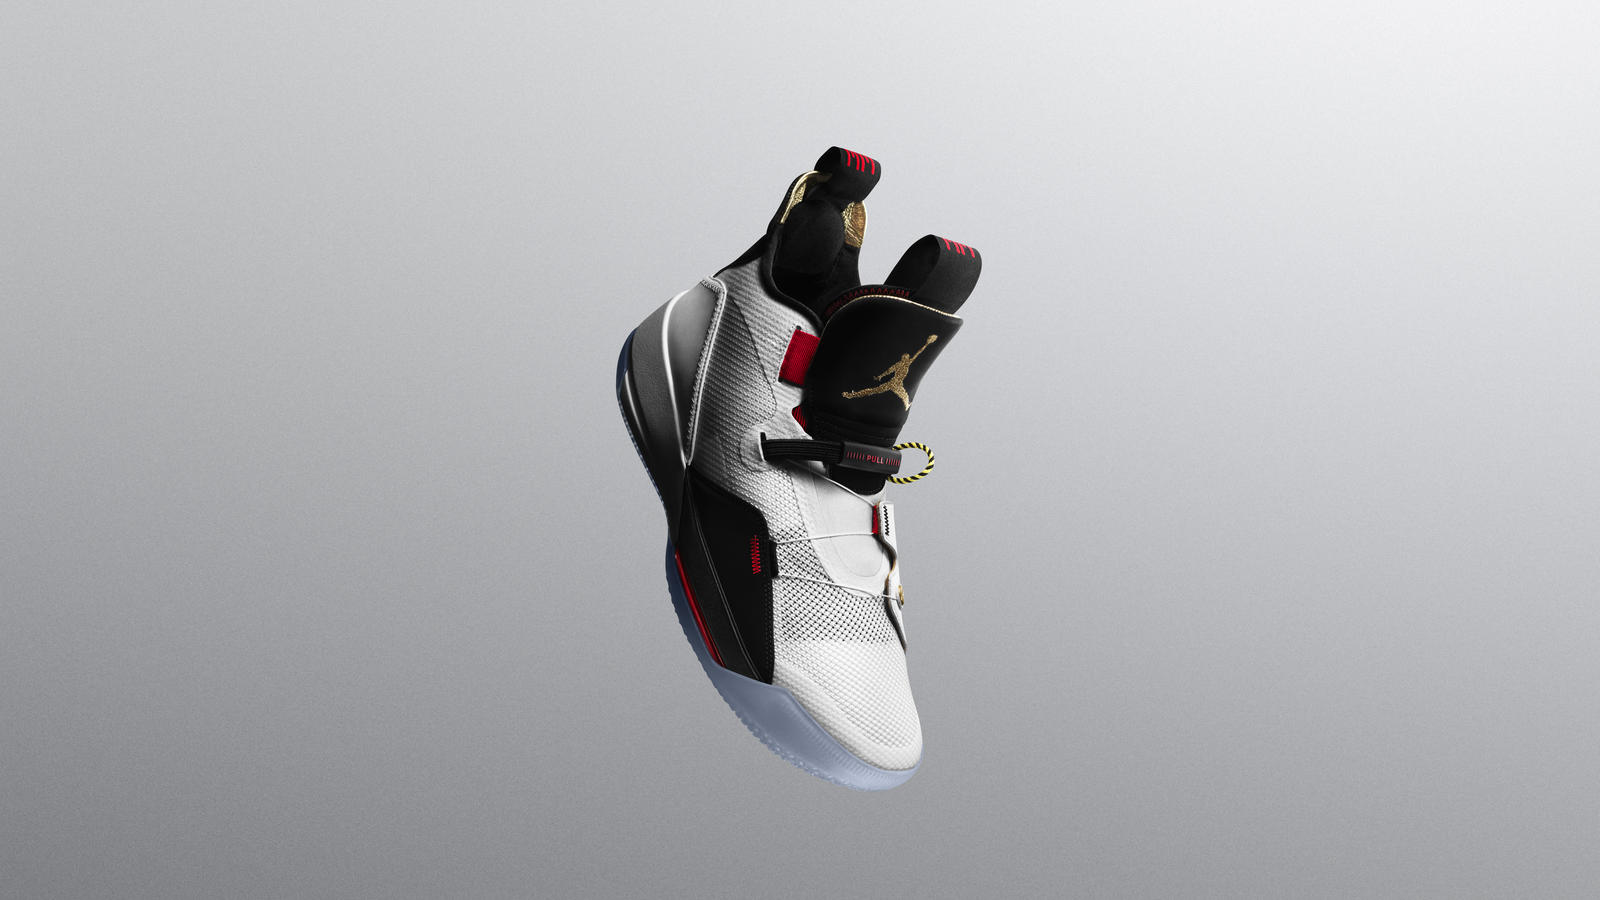 ab8d777097f070 Introducing the Air Jordan 33 with FastFit - Nike News